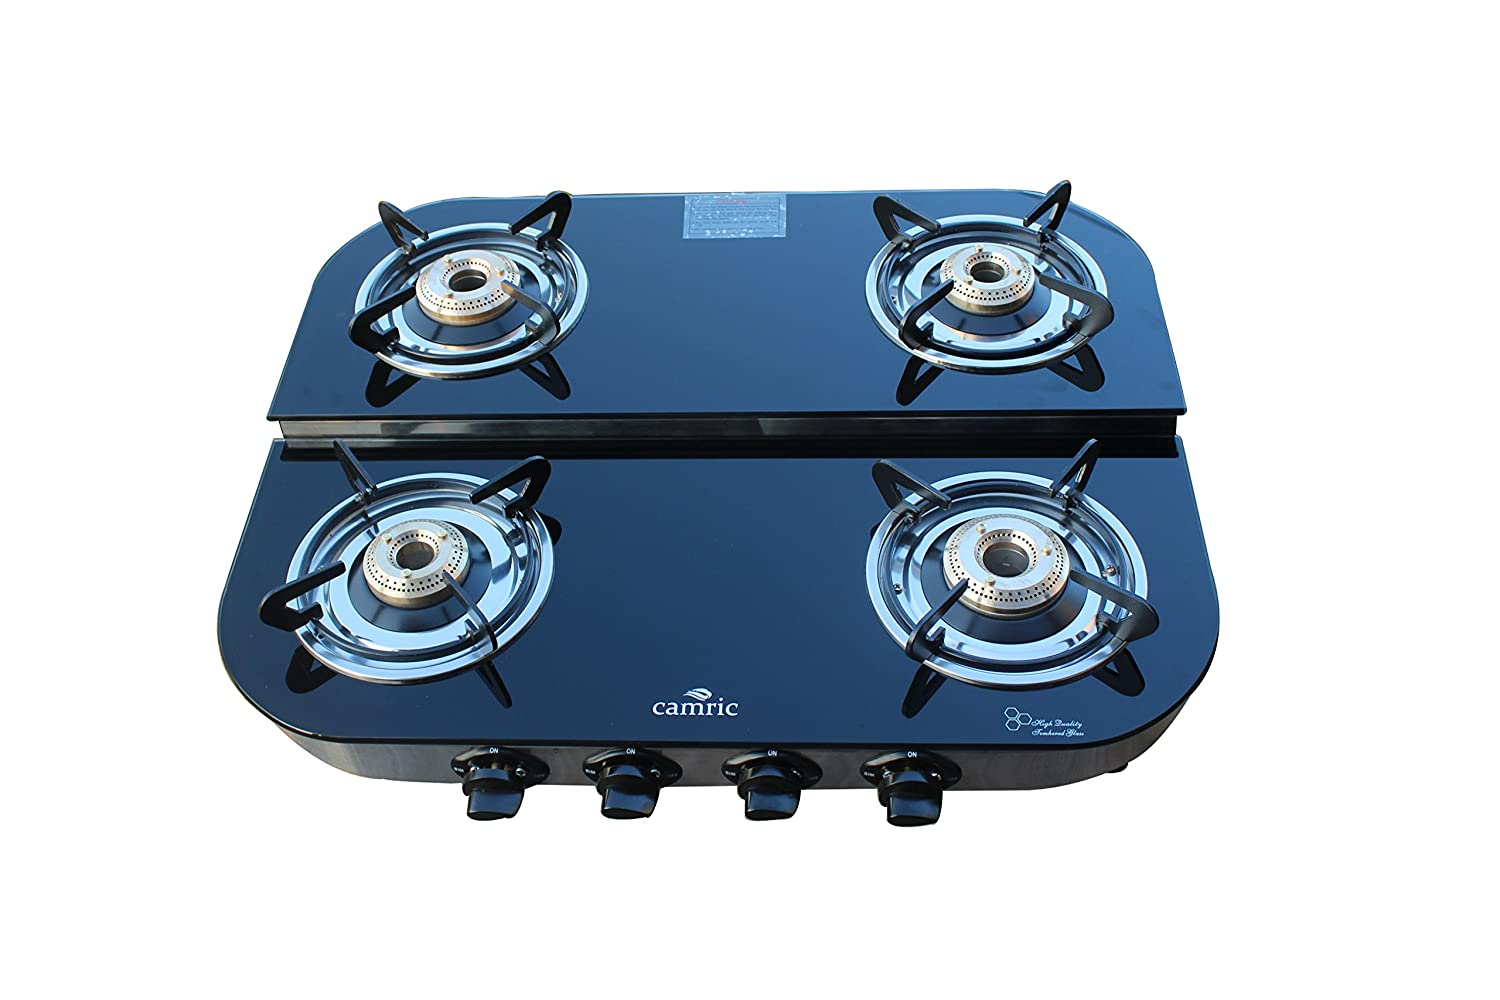 Buy Camric Gas Stove 4 Burner Double Decker Online at Low Prices in ...